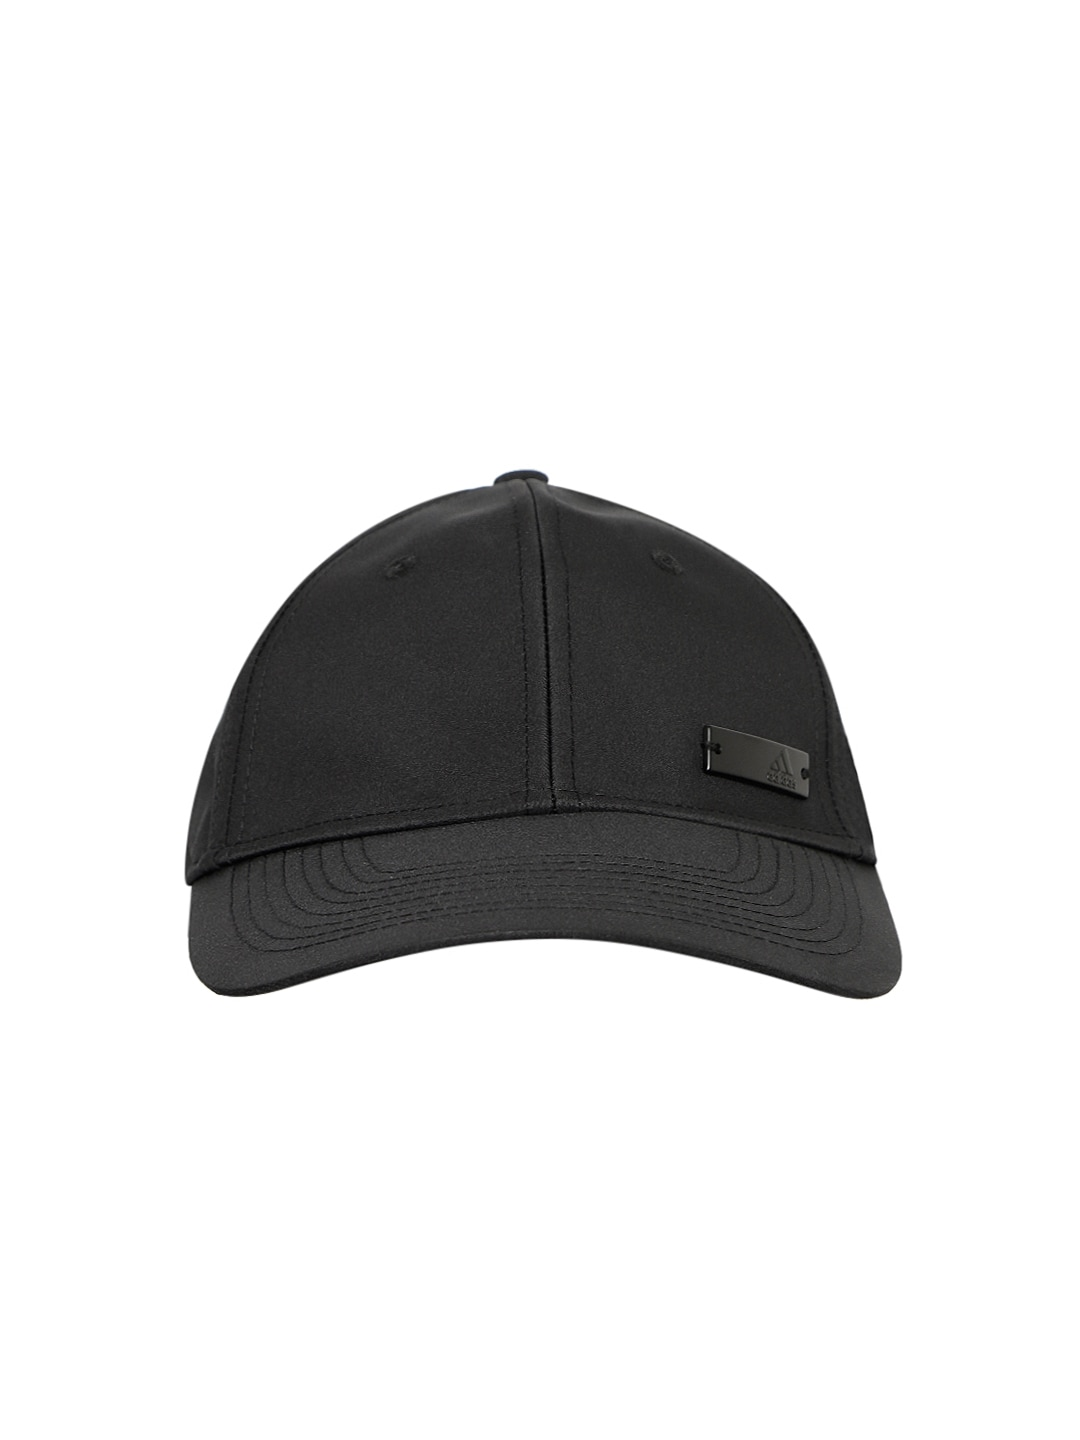 64b950d1e81 Adidas Cap - Buy Adidas Caps for Women   Girls Online